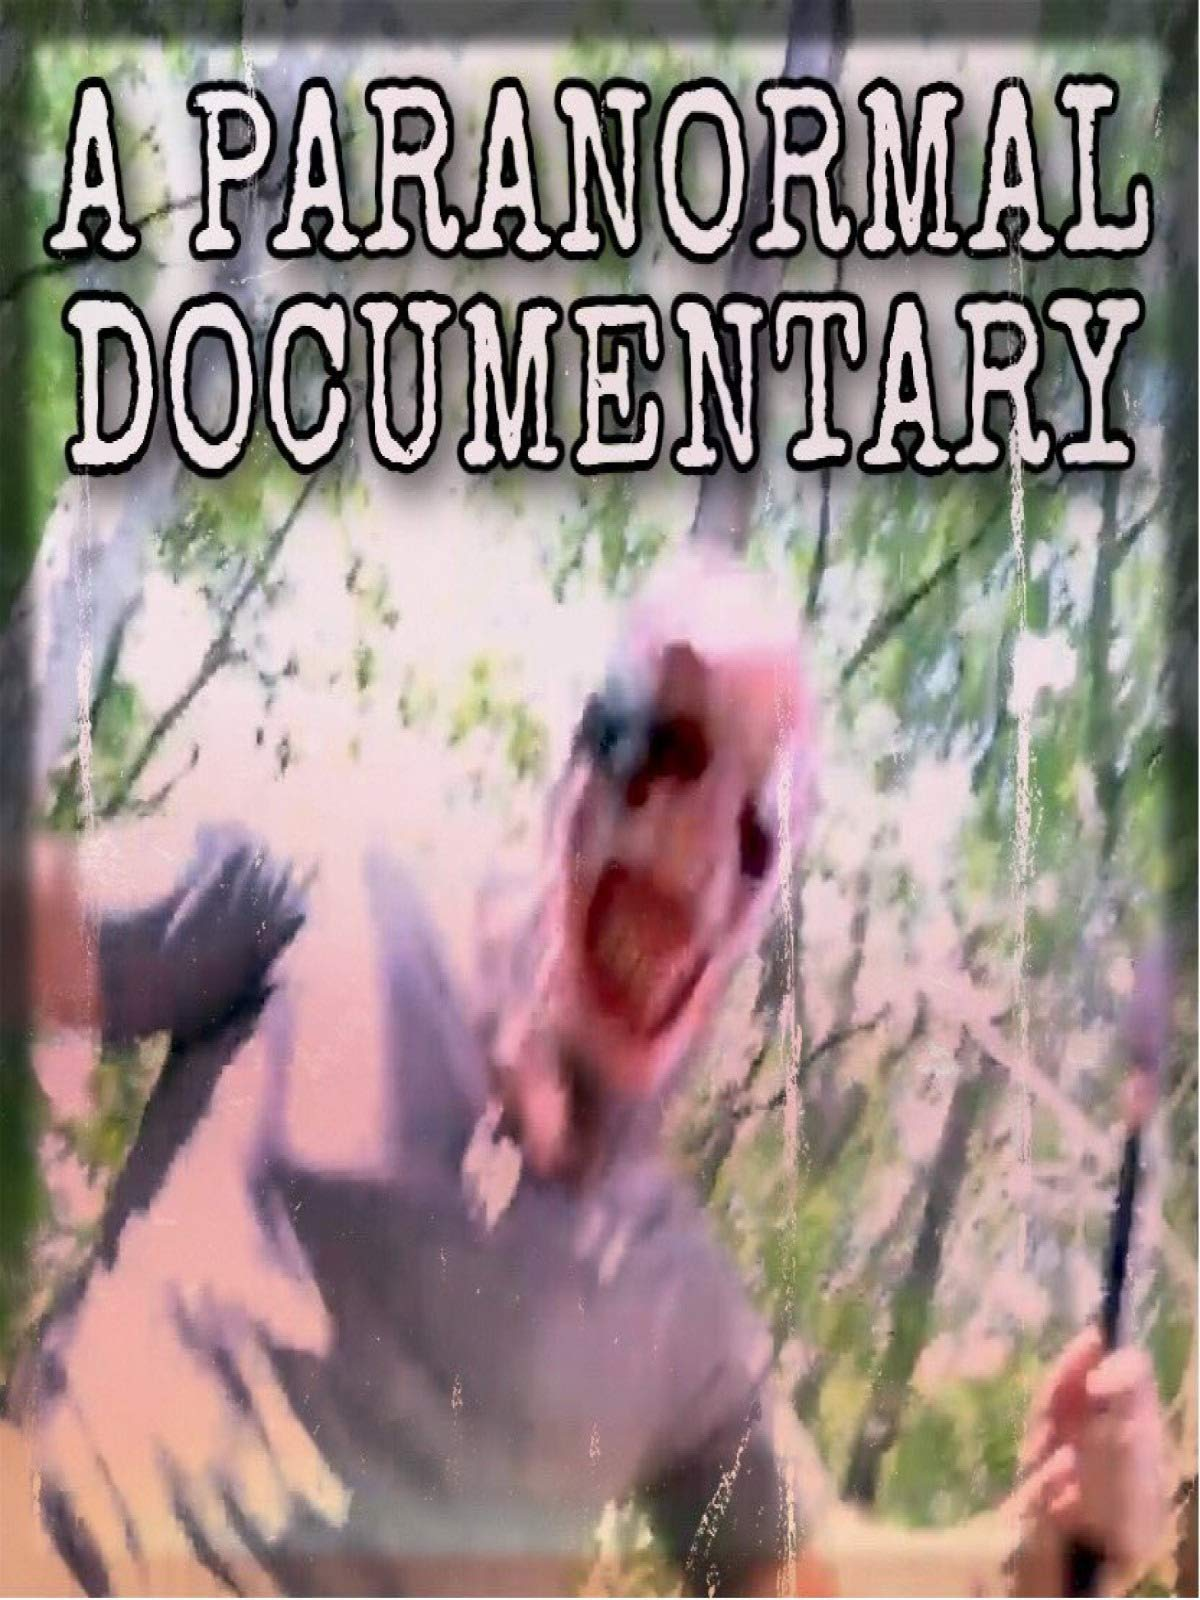 A Paranormal Documentary